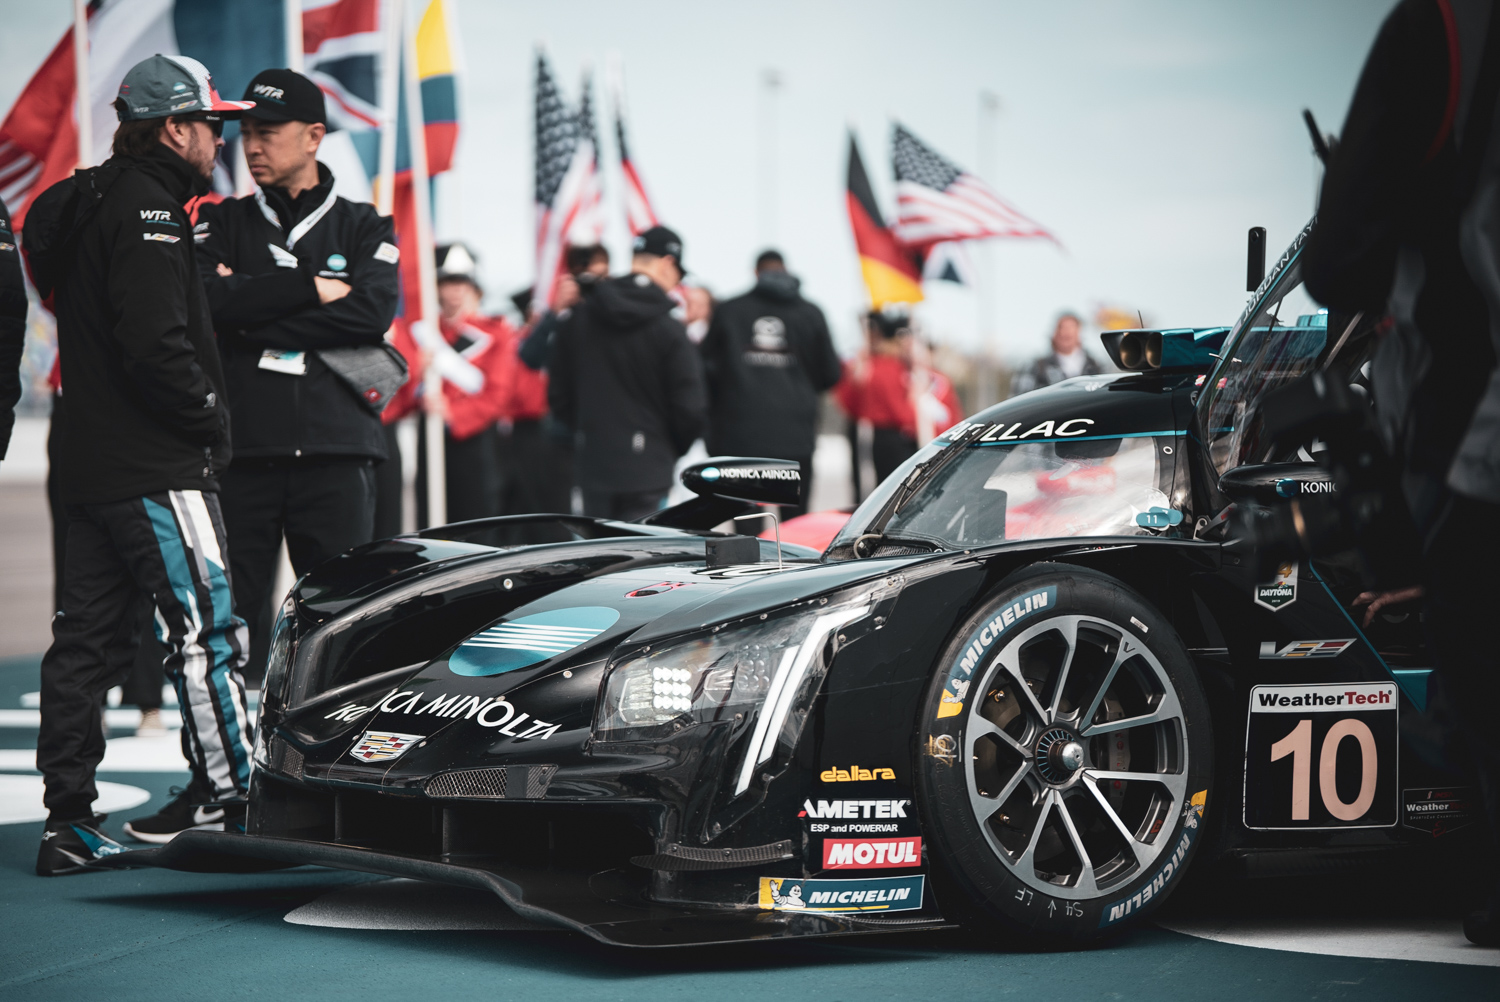 The eventual race-winner, Wayne Taylor Racing, sits idle on the grid. Alonso (far left) walks around the front fender of the car that he eventually piloted to victory.